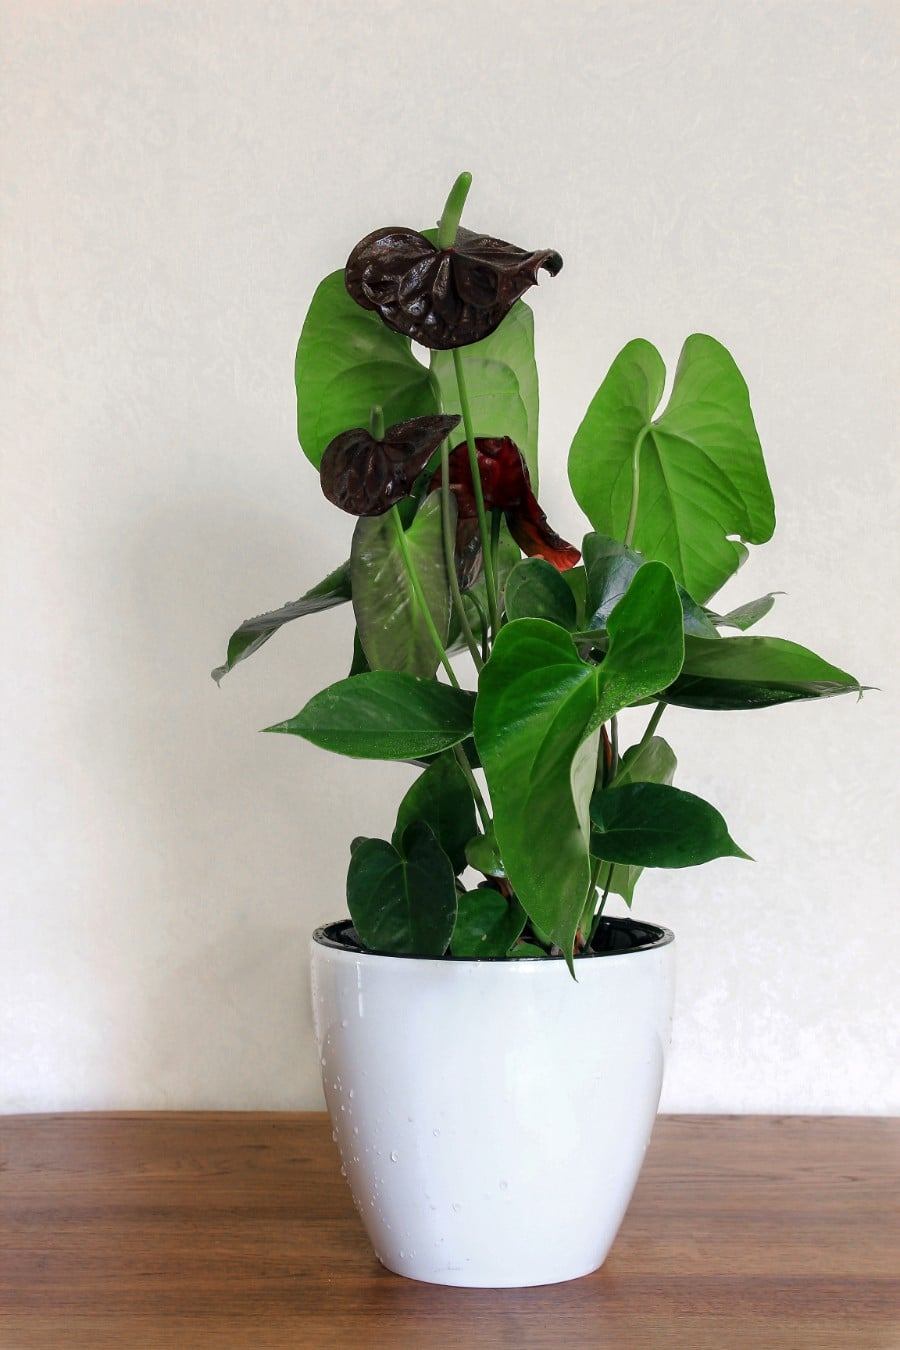 How To Care For Anthurium The Easy Way Flamingo Flower Smart Garden Guide Flamingo Flower Plant Care Houseplant Anthurium